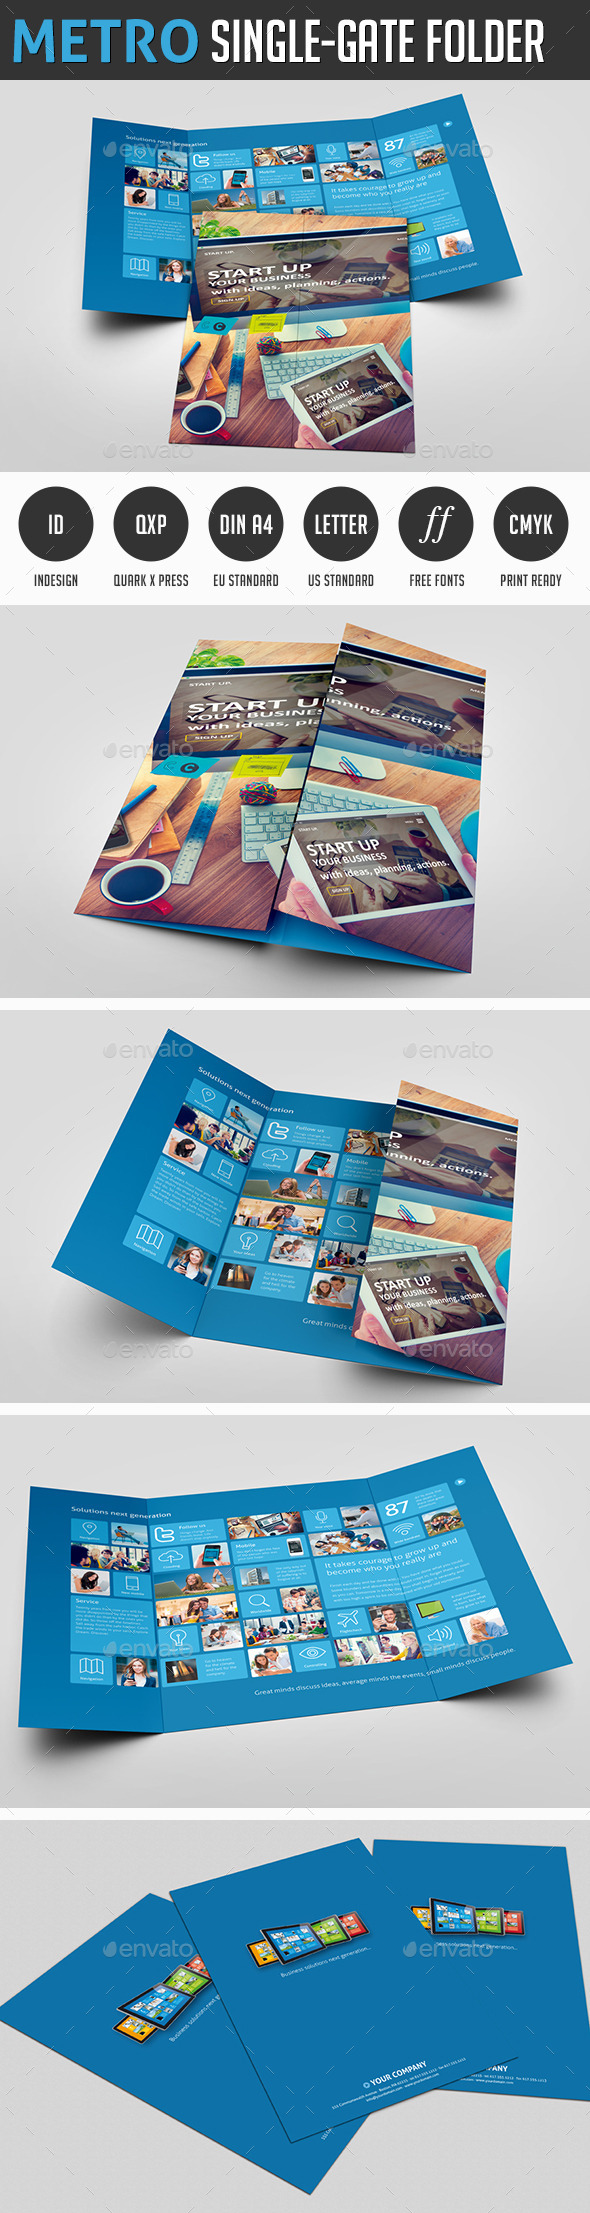 Metro Single-Gate Folder - Corporate Flyers